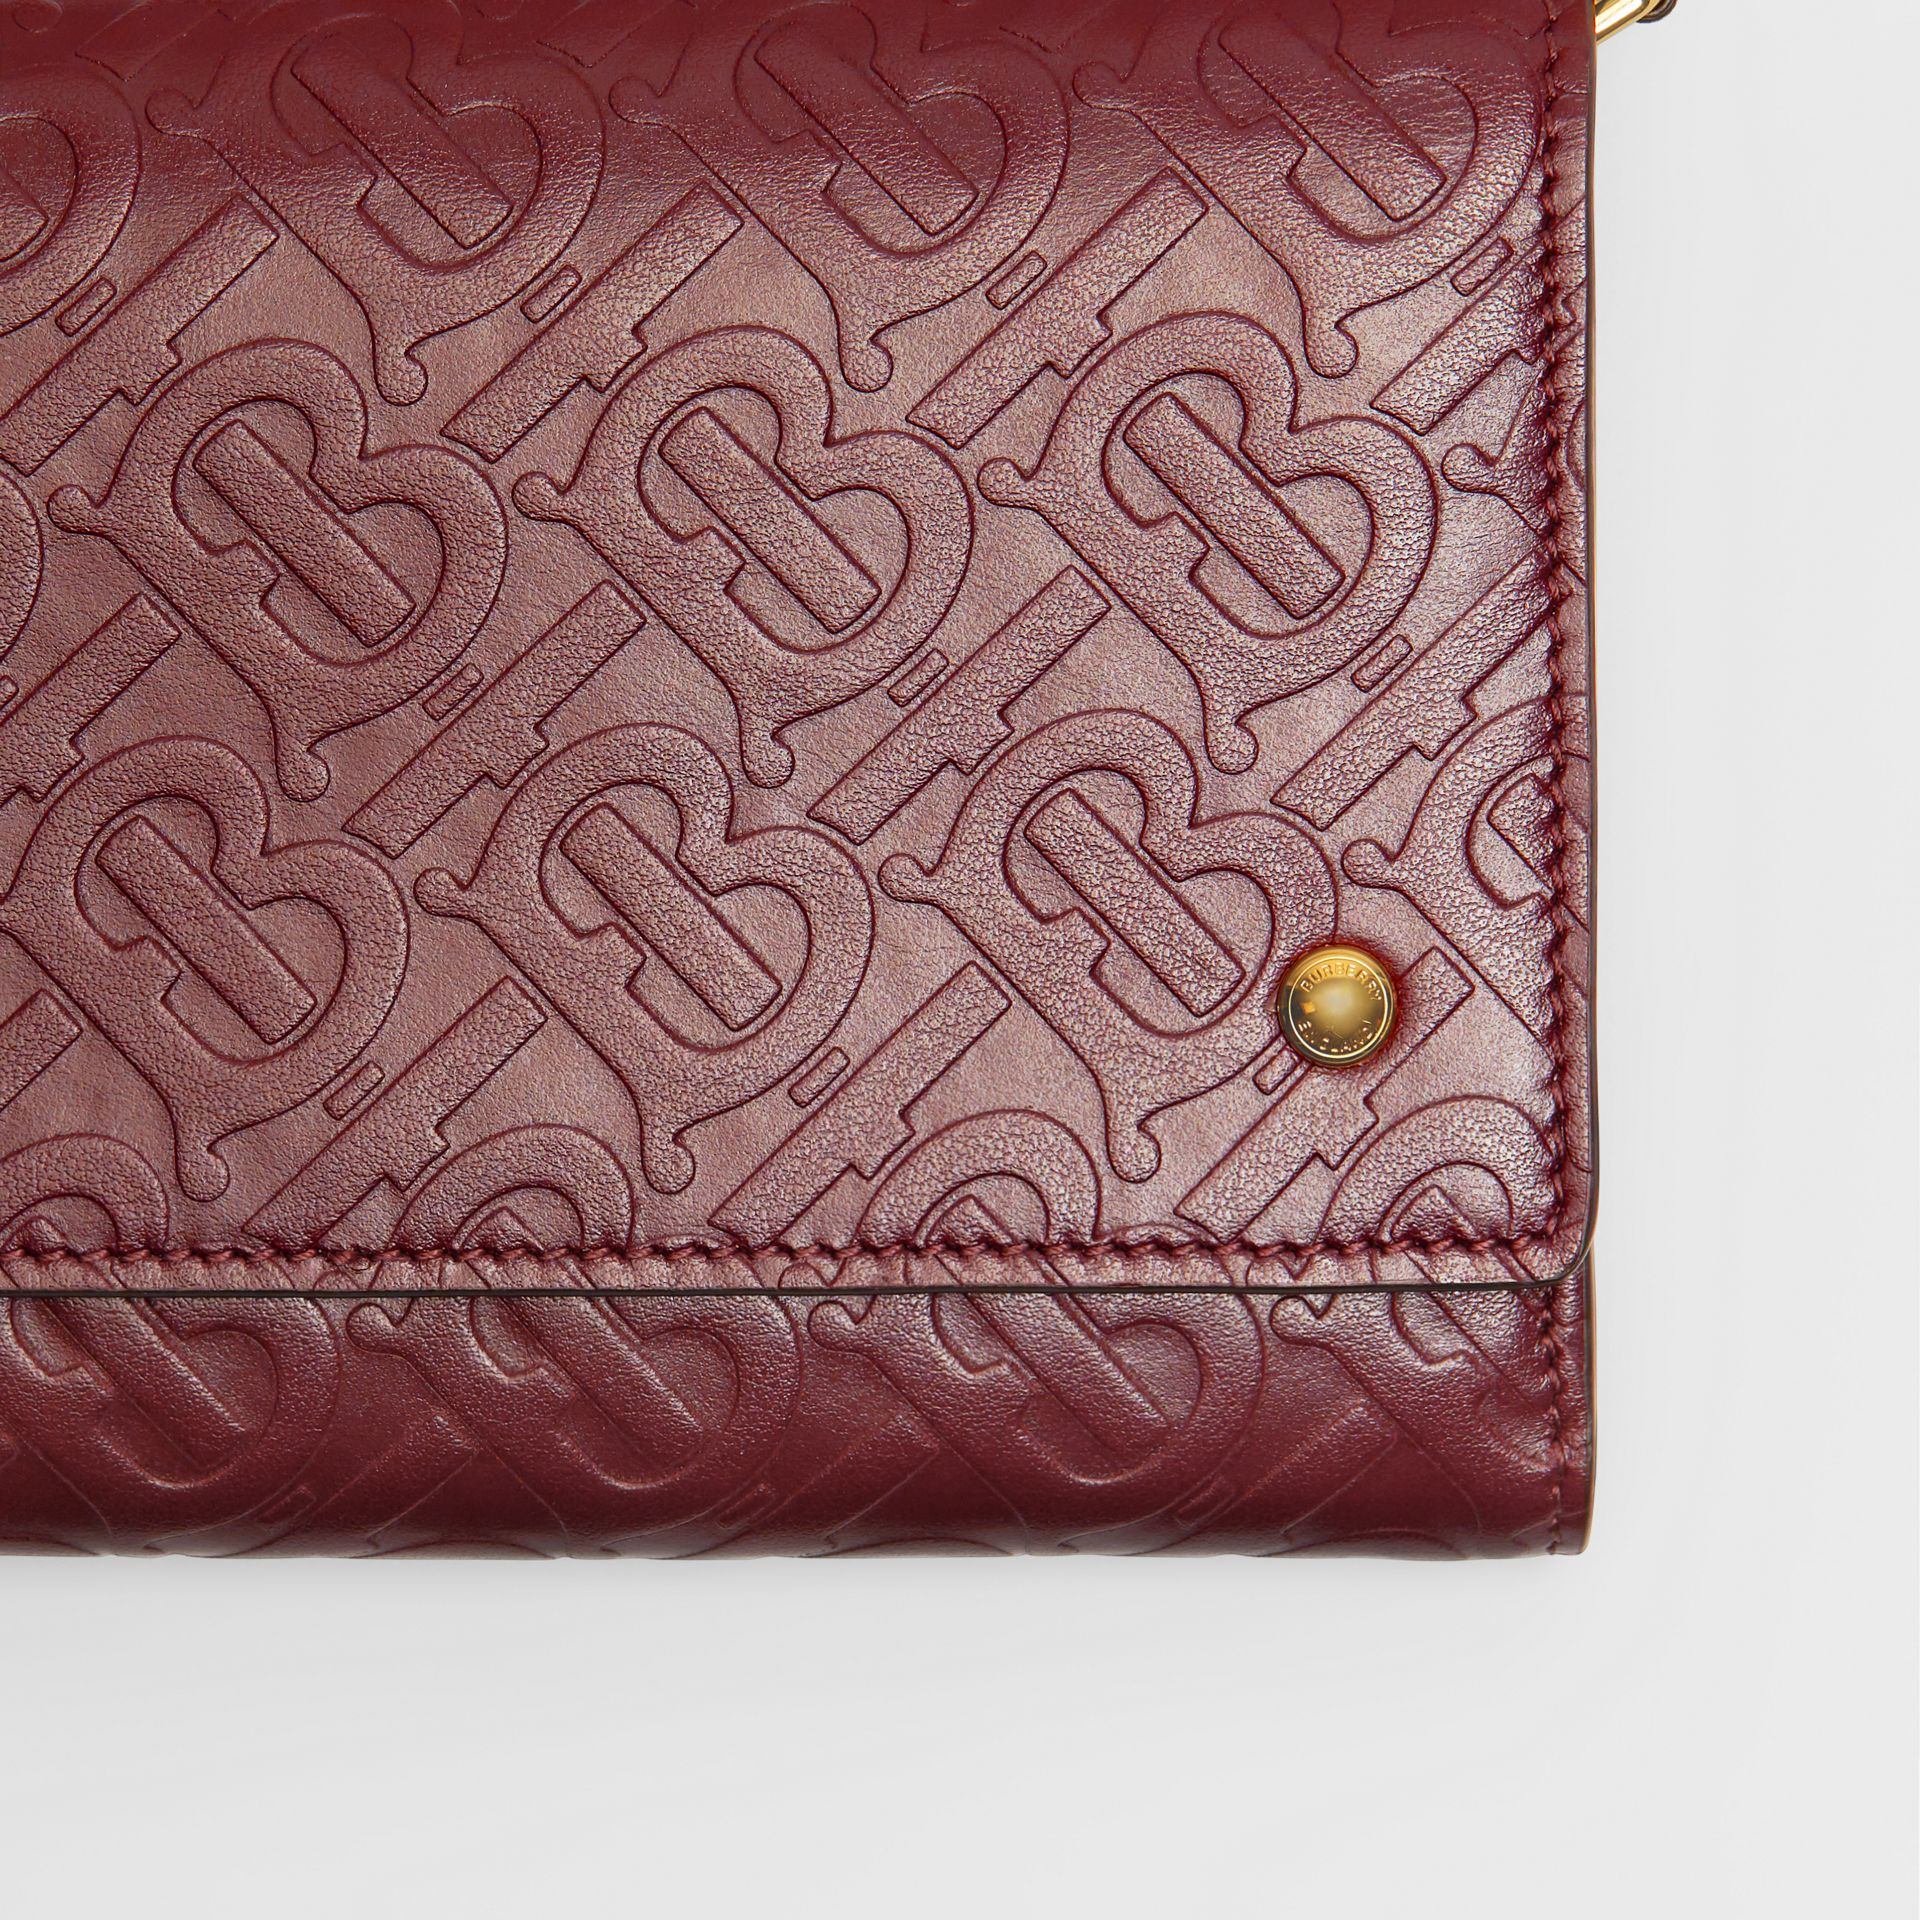 Monogram Leather Wallet with Detachable Strap in Oxblood - Women | Burberry - gallery image 1